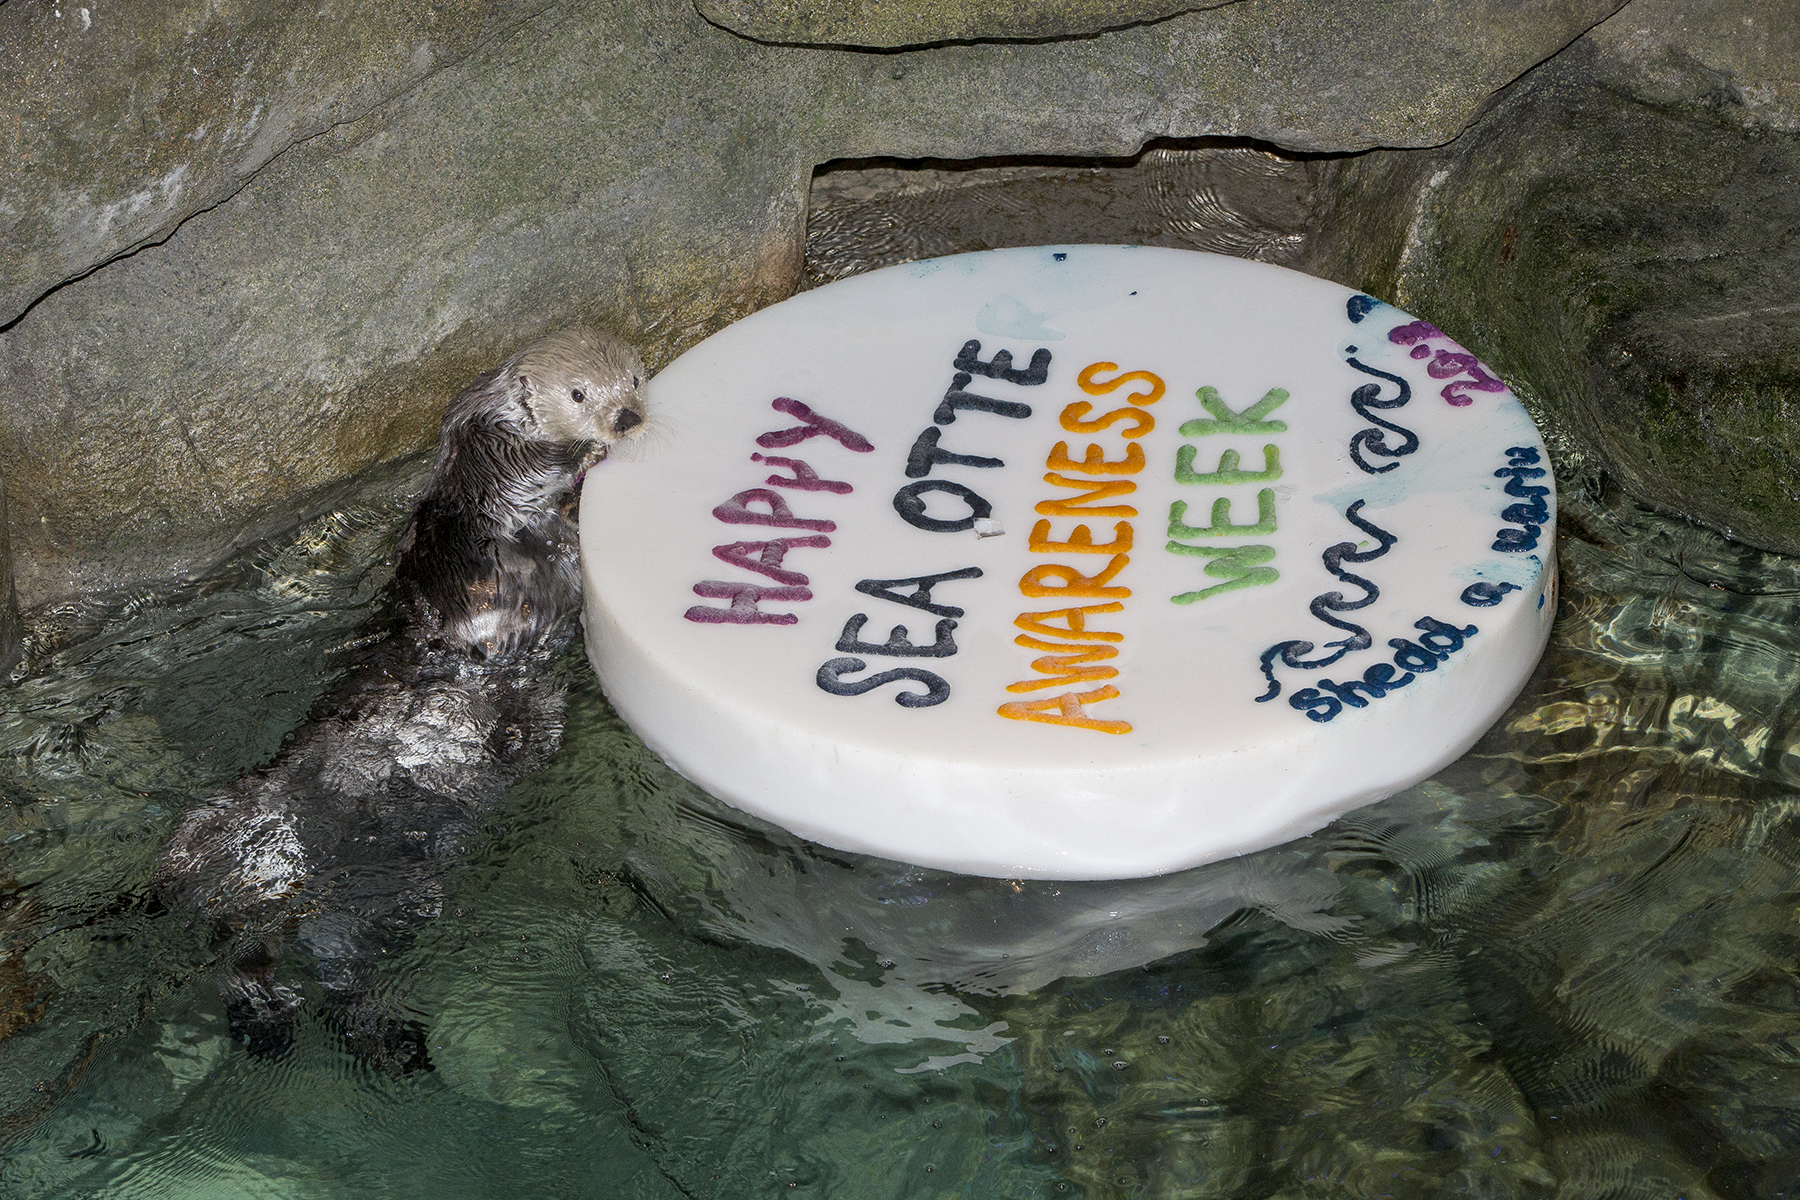 Sea Otters at Shedd Aquarium Celebrate Sea Otter Awareness Week with Ice Cakes 3